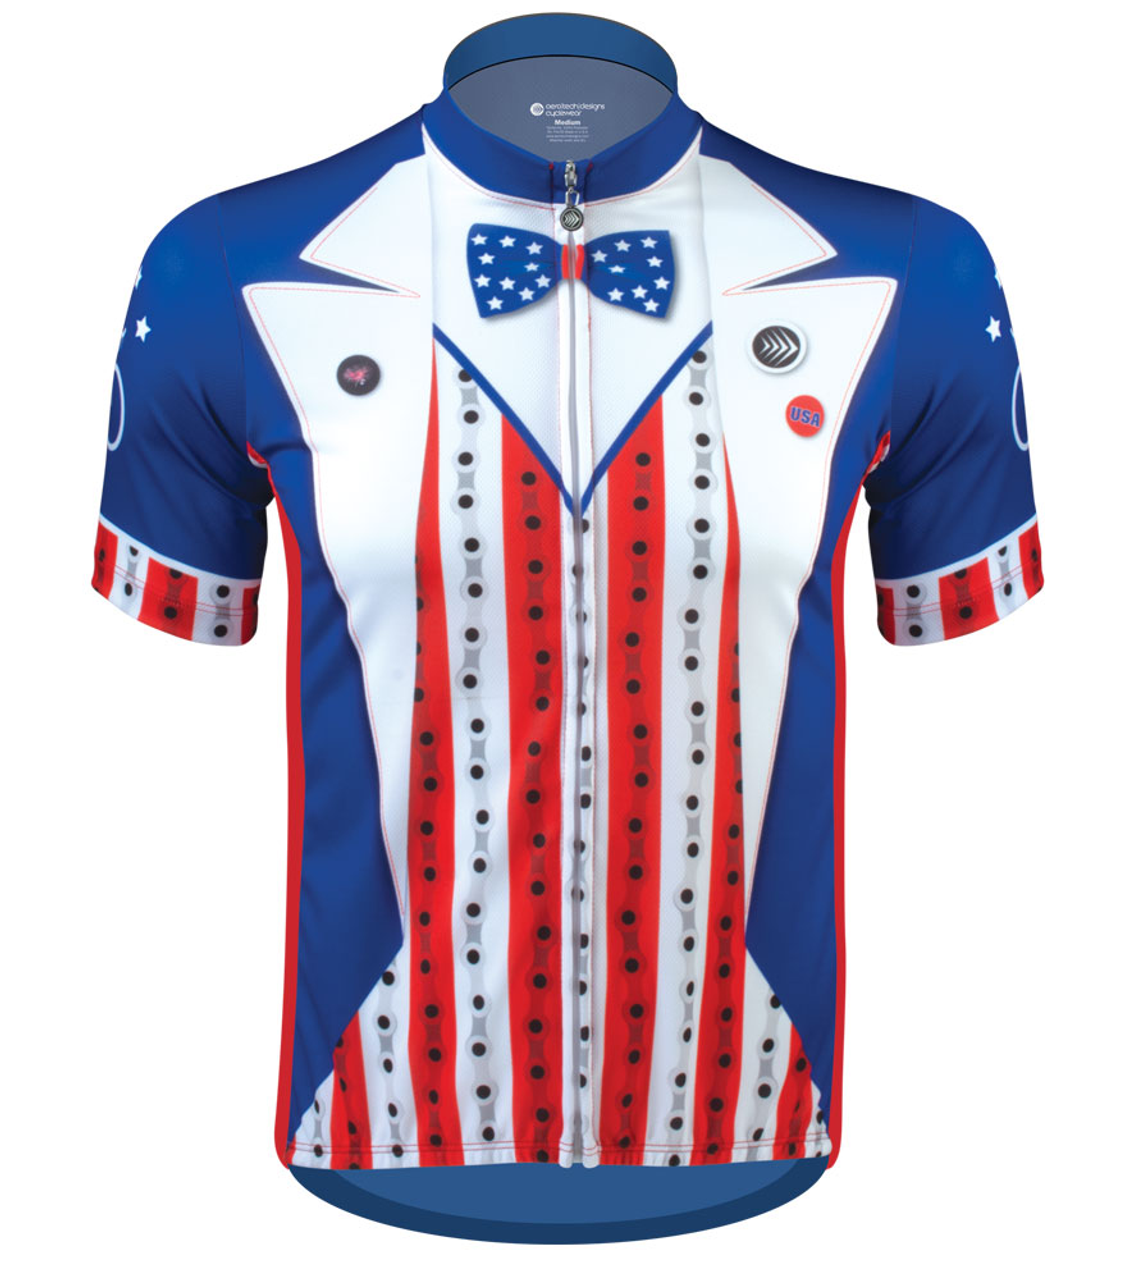 63efd9ec9 Aero Tech Uncle Sam Patriotic Cycling Jersey Made in USA Sprint Jersey Front